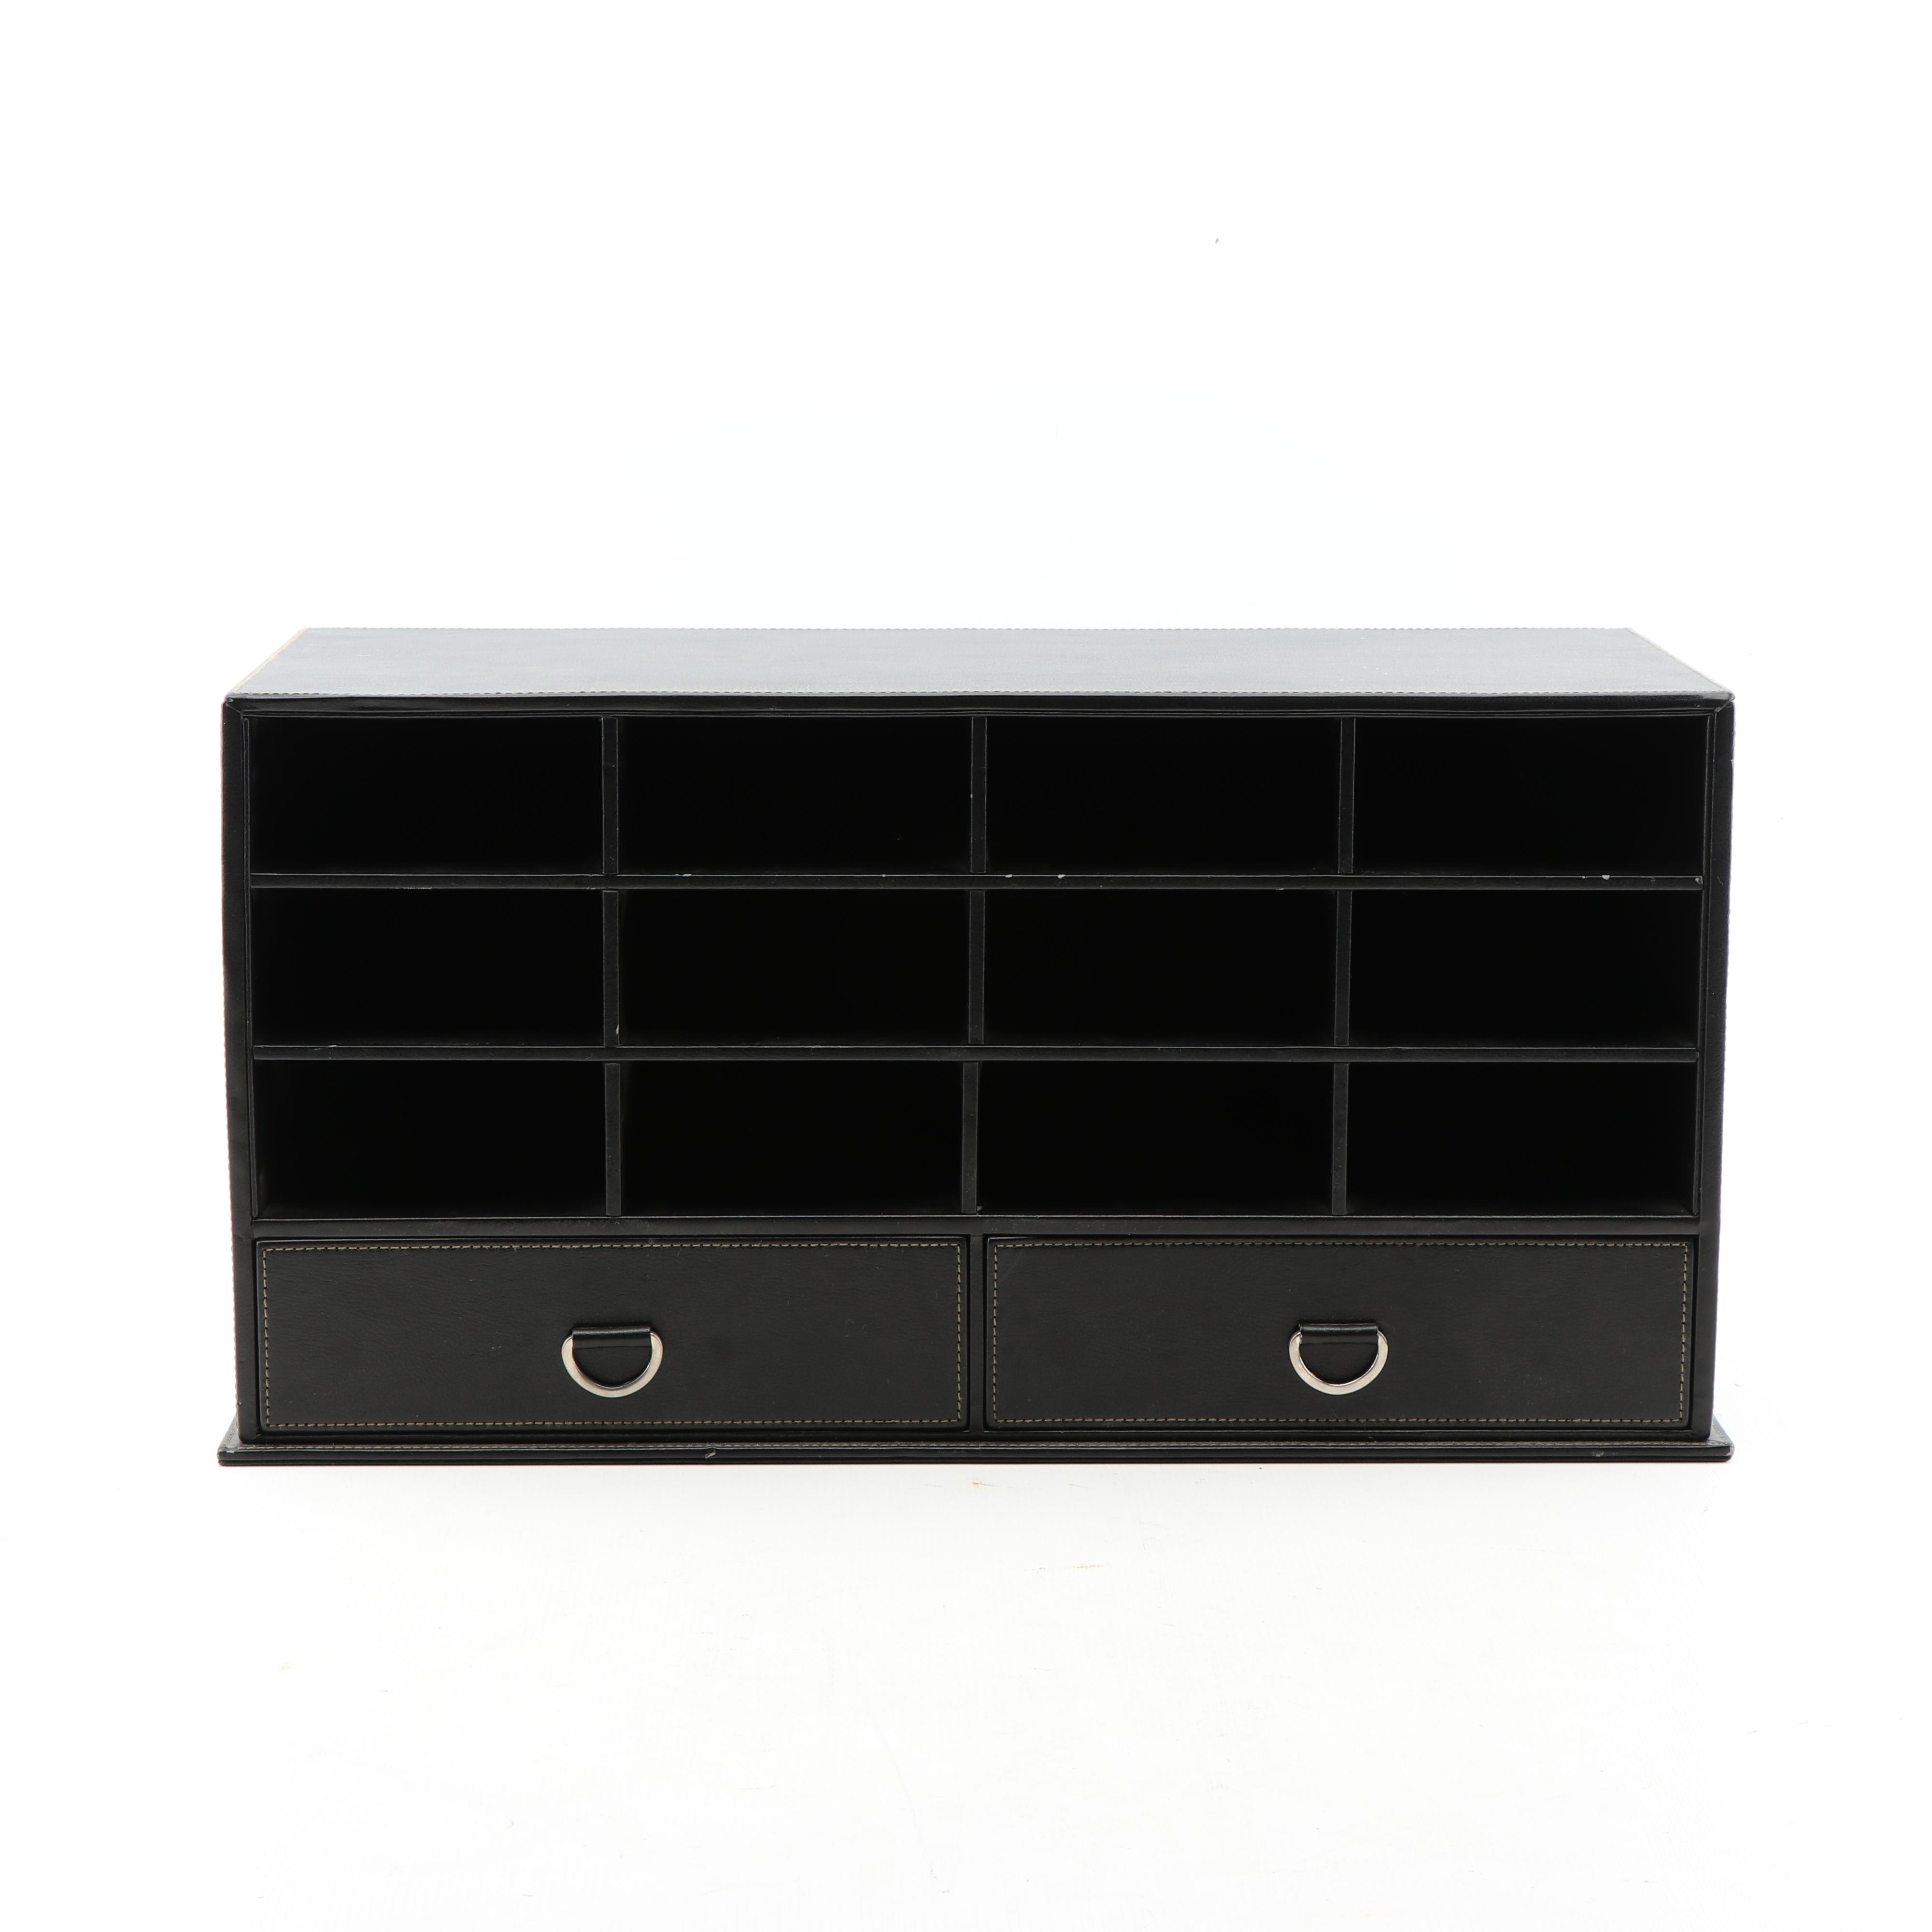 Milano Series Leather Desk Valet